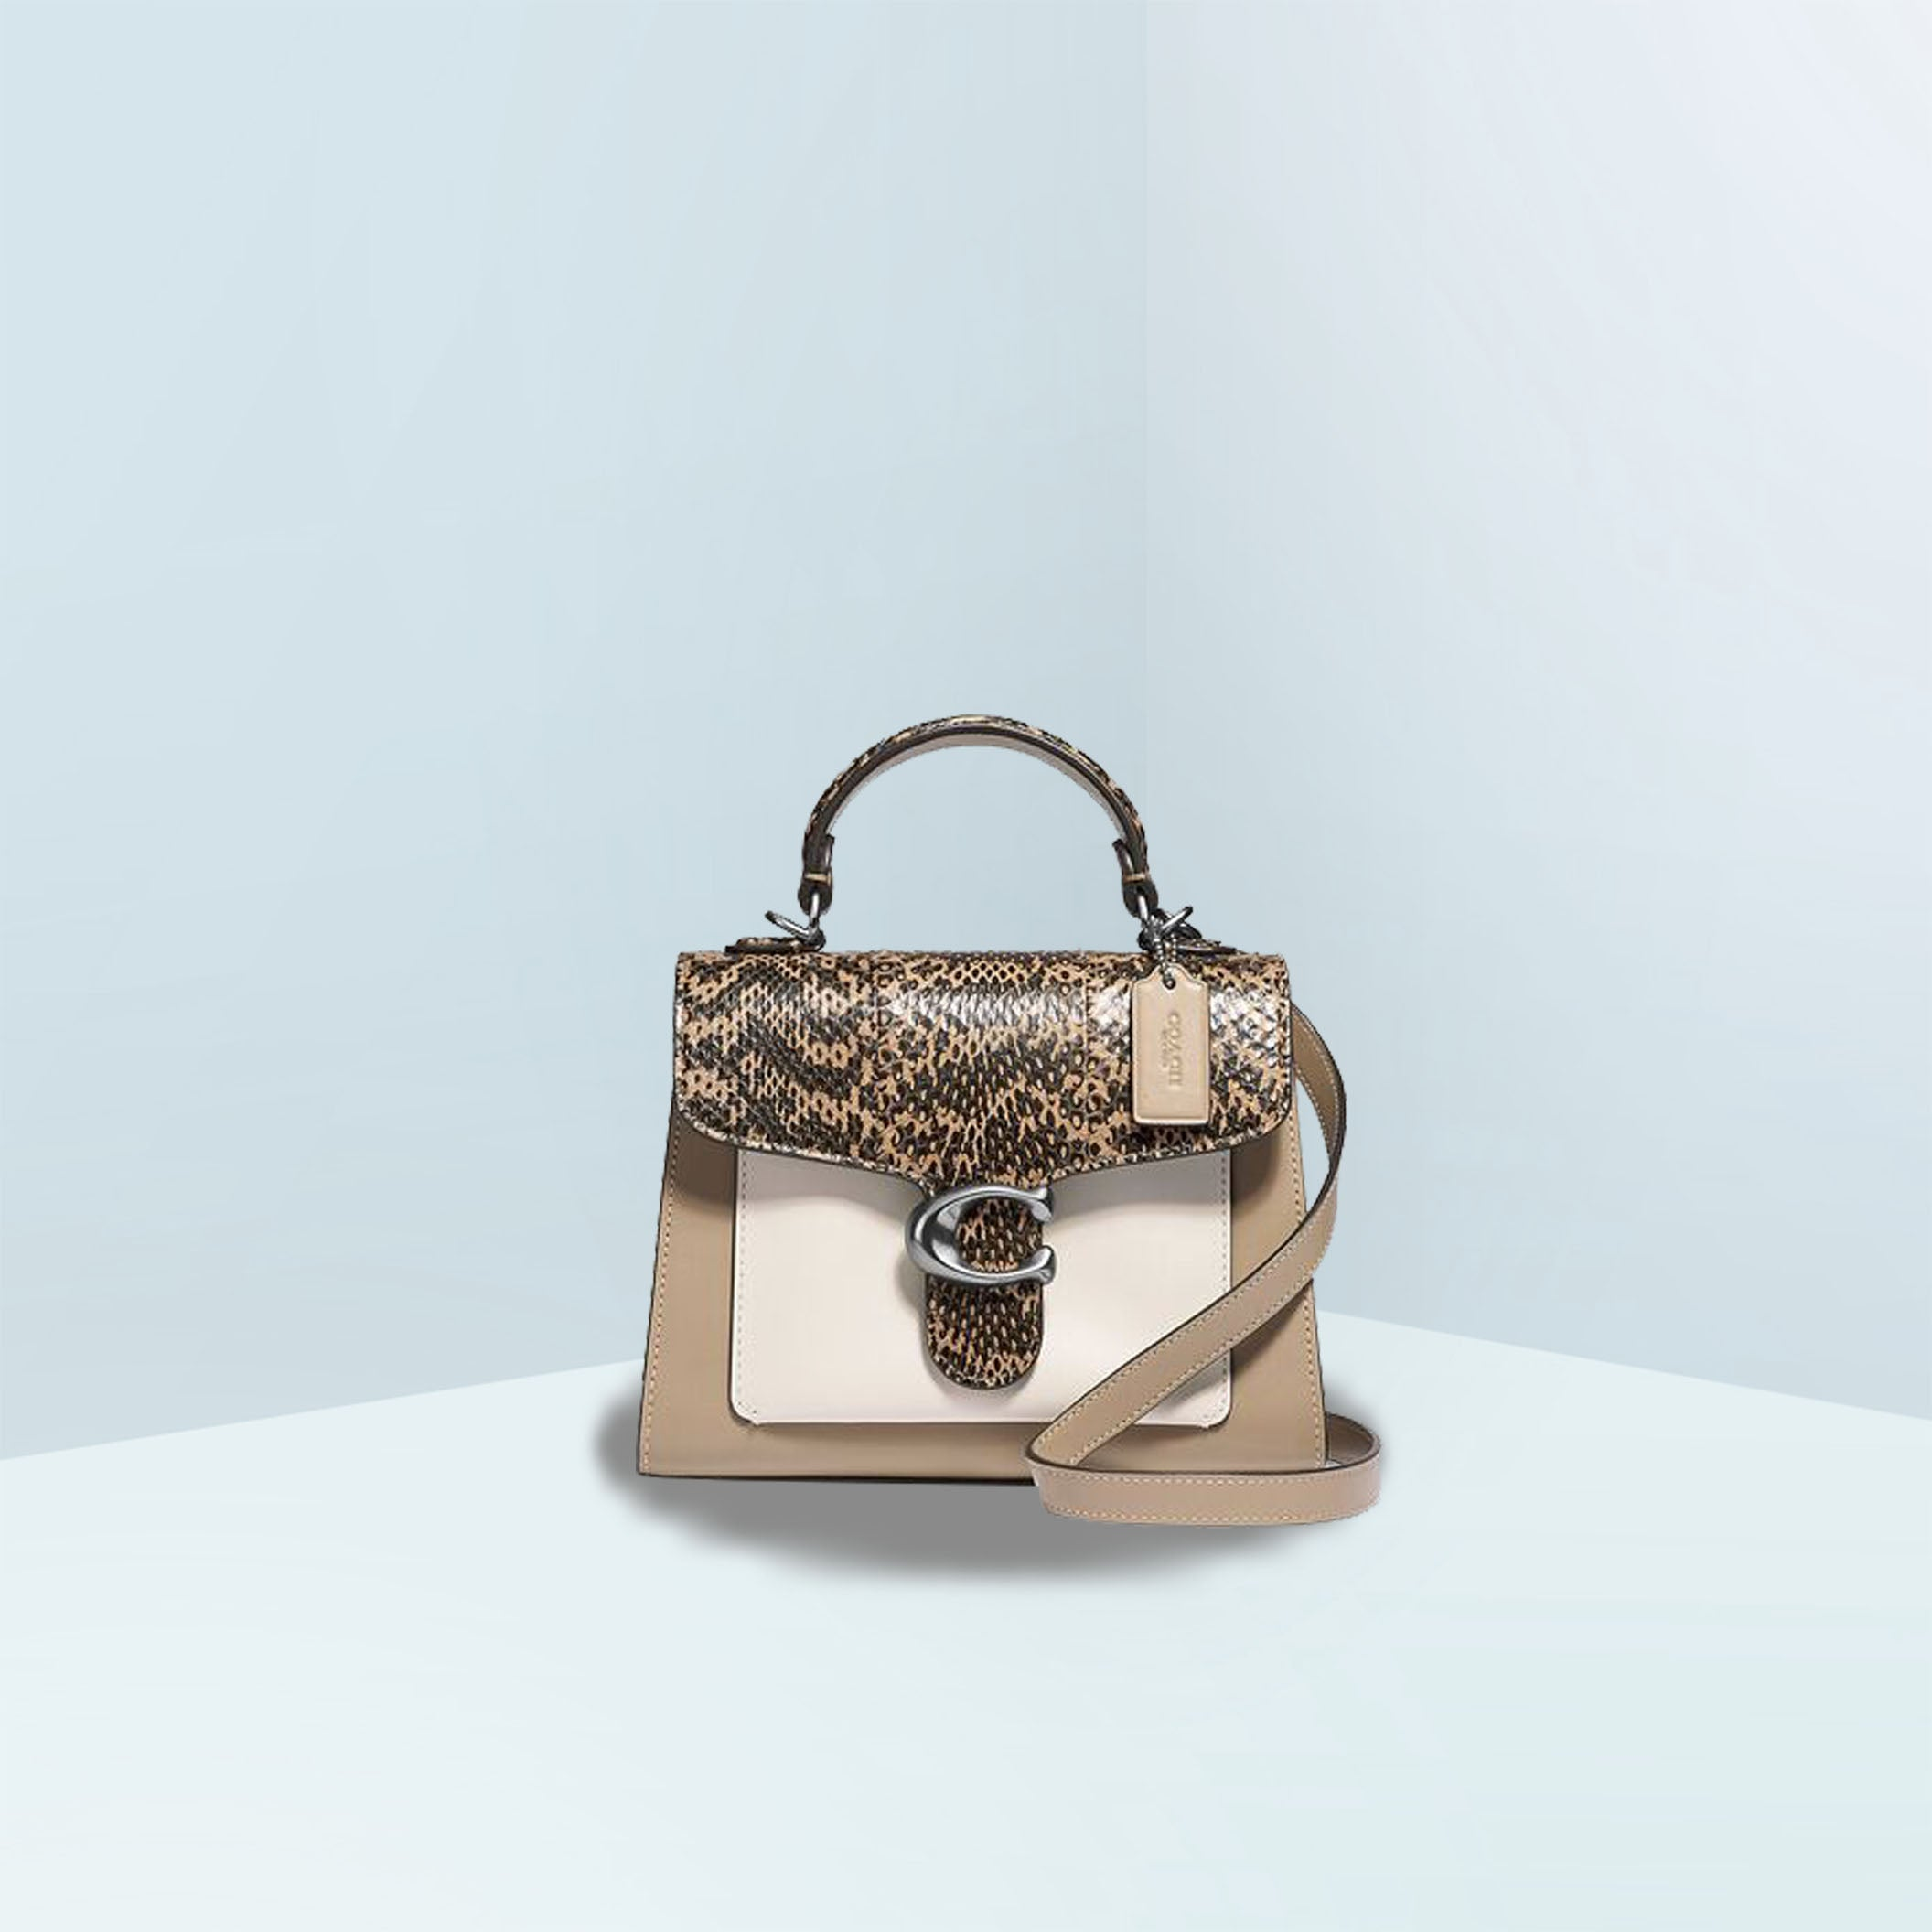 Tabby Top Handle 20 In Colorblock With Snakeskin Mini Crossbody Bag